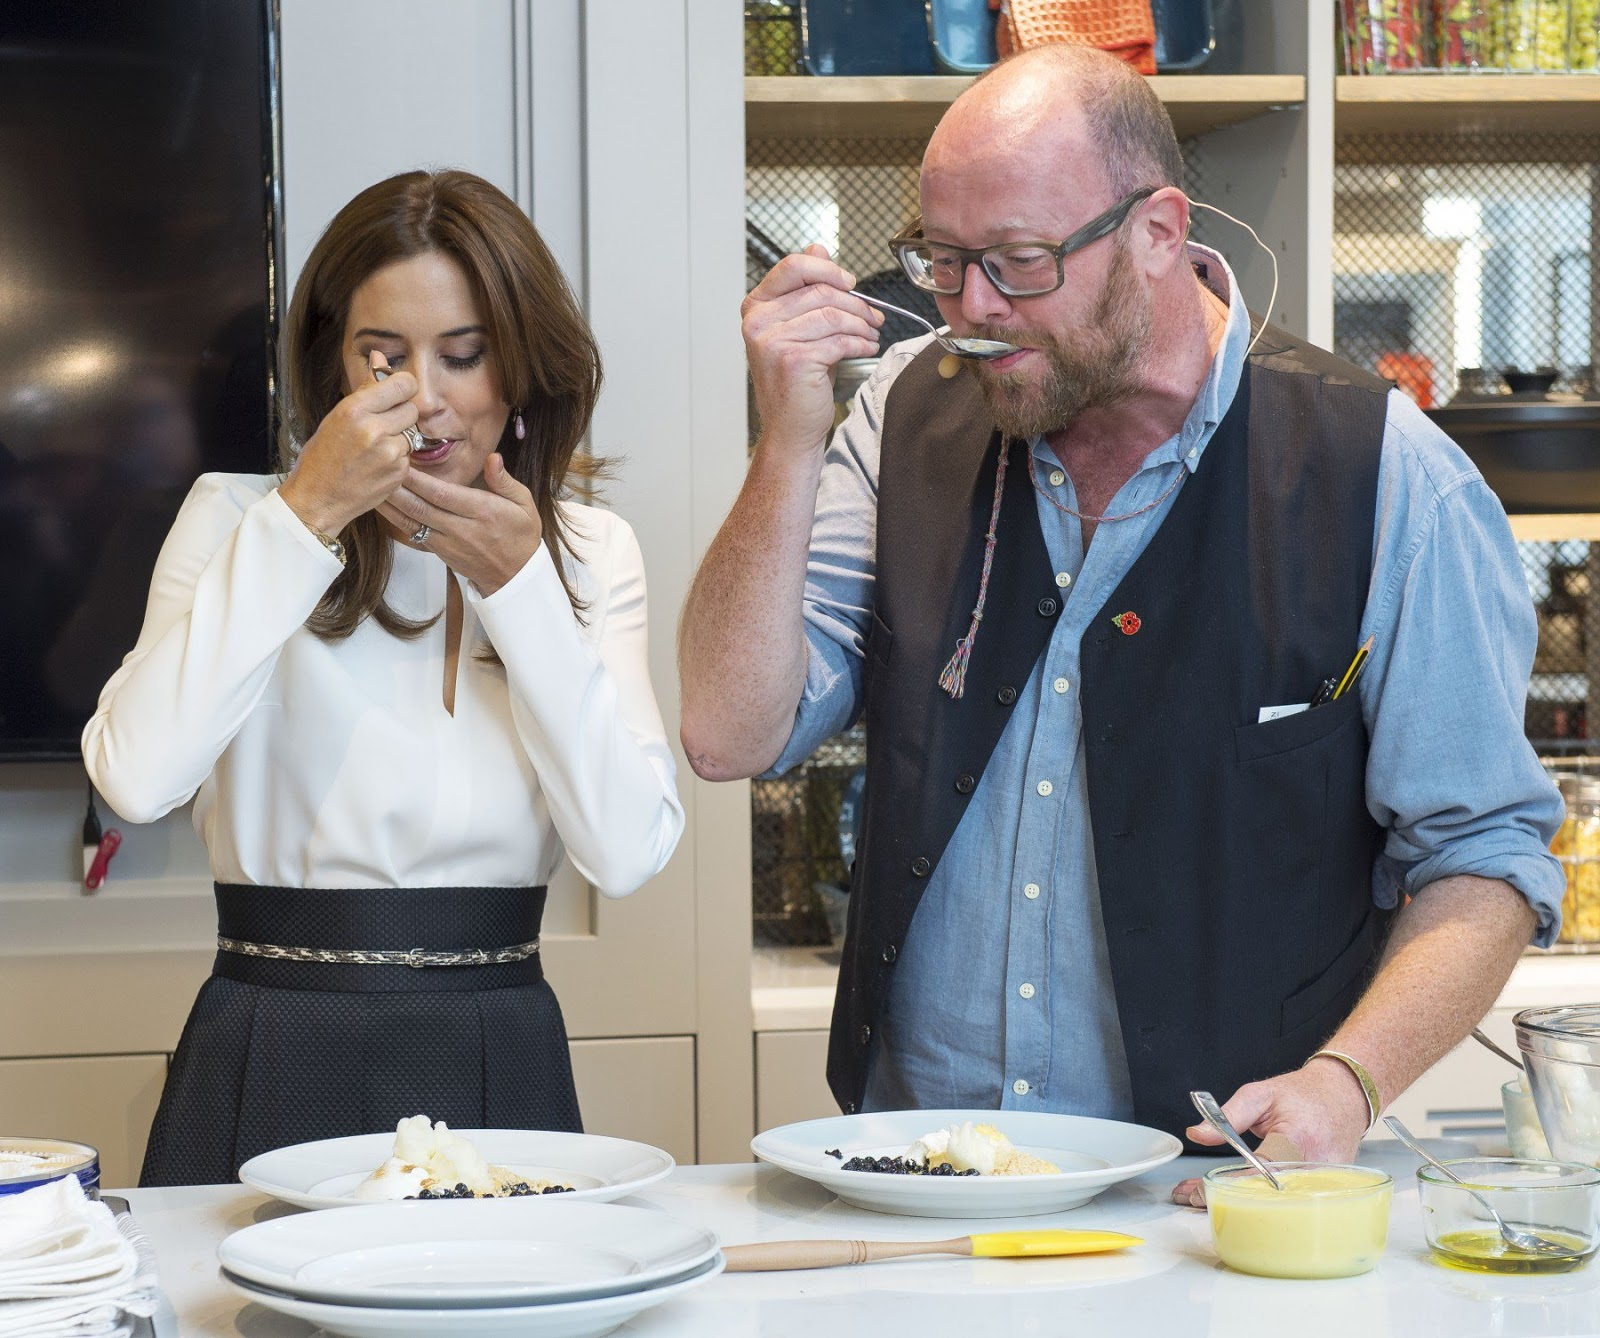 Crown Princess Mary worked closely together with the cheerful British-born chef — now living and working in Denmark — who guided her through the creation of the dessert.